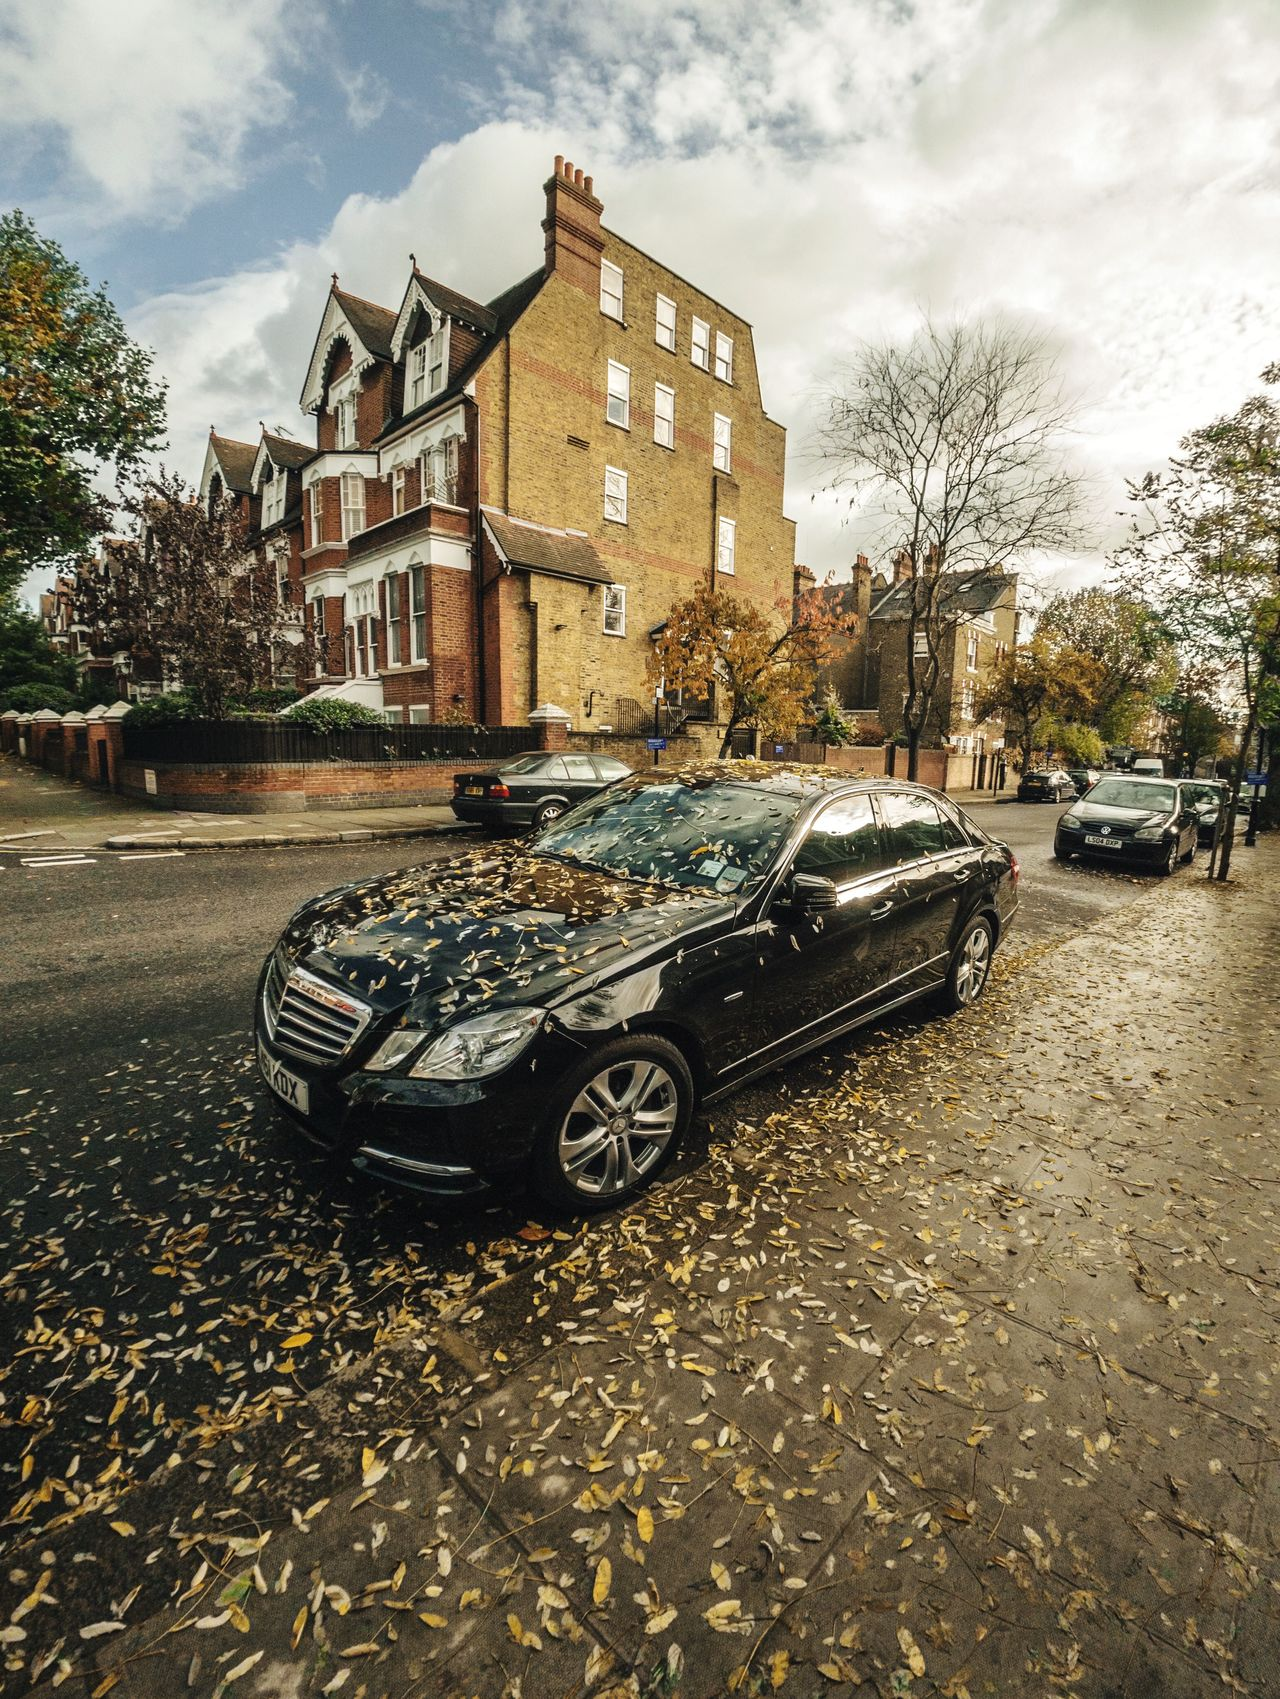 Mercedes in London. Car Building Exterior Architecture City Transportation No People Built Structure Outdoors Day EyeEmNewHere Tree Road Leaves Fall Autumn